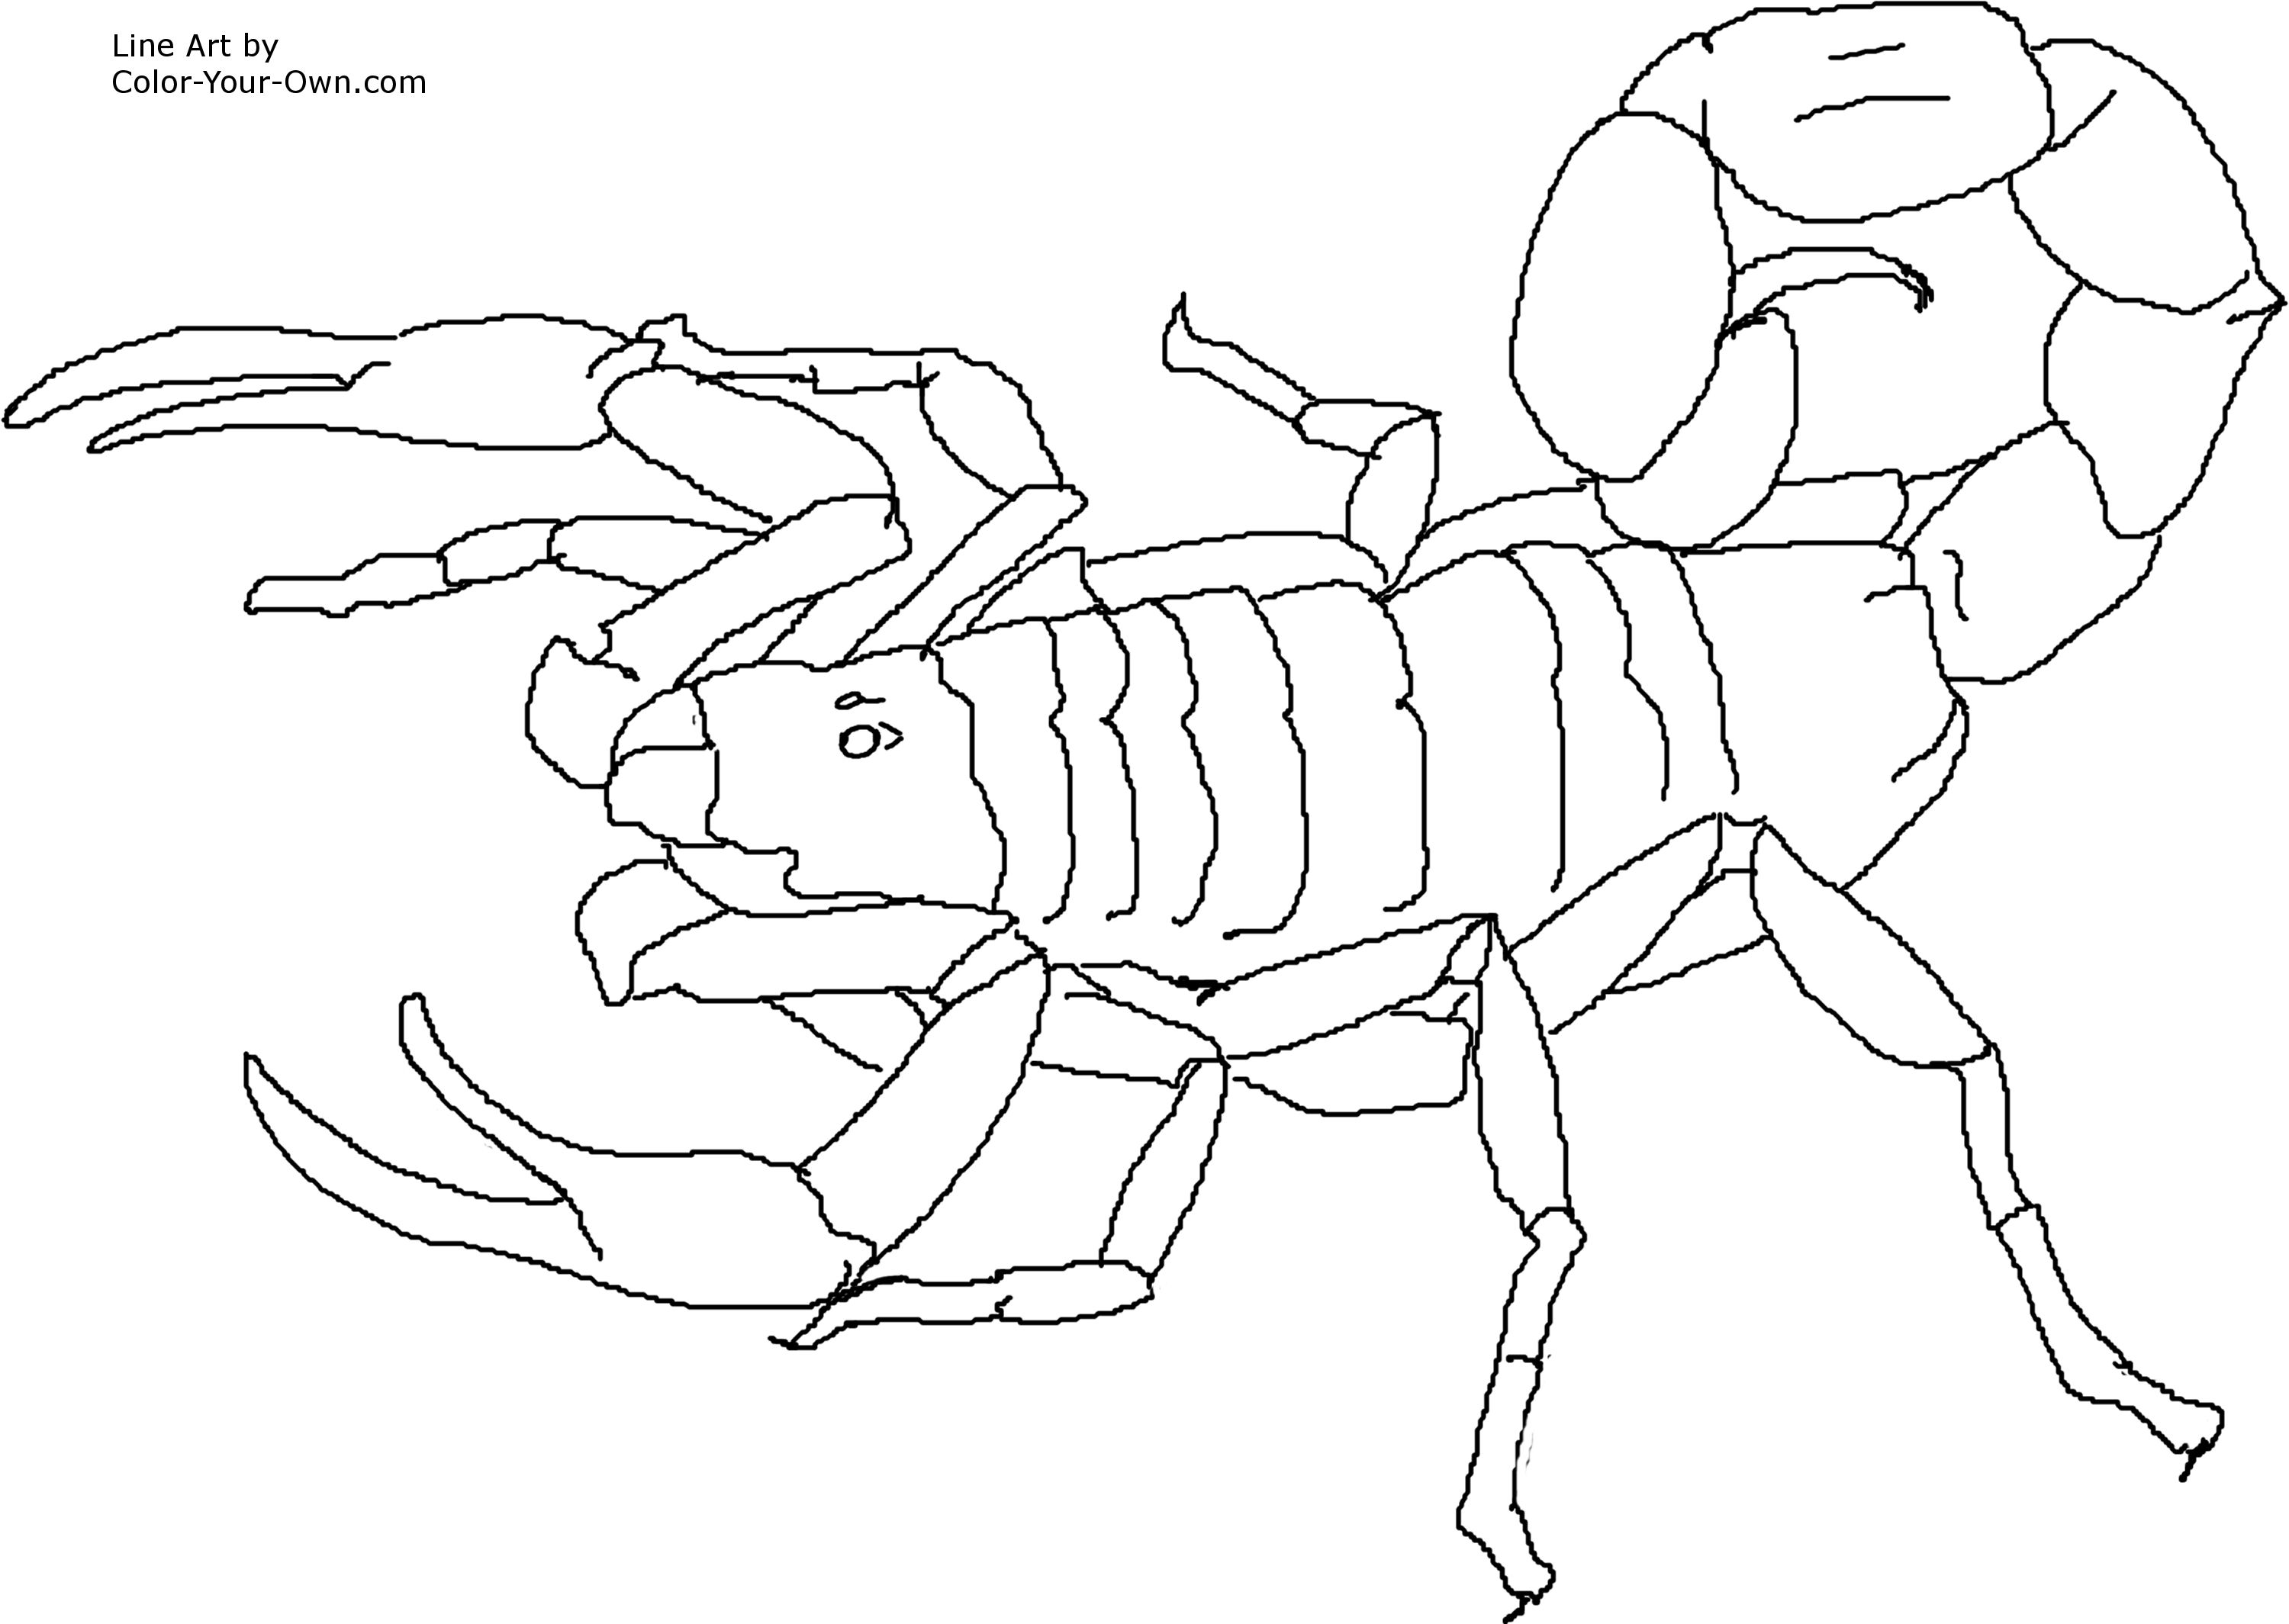 escorpion dibujo: